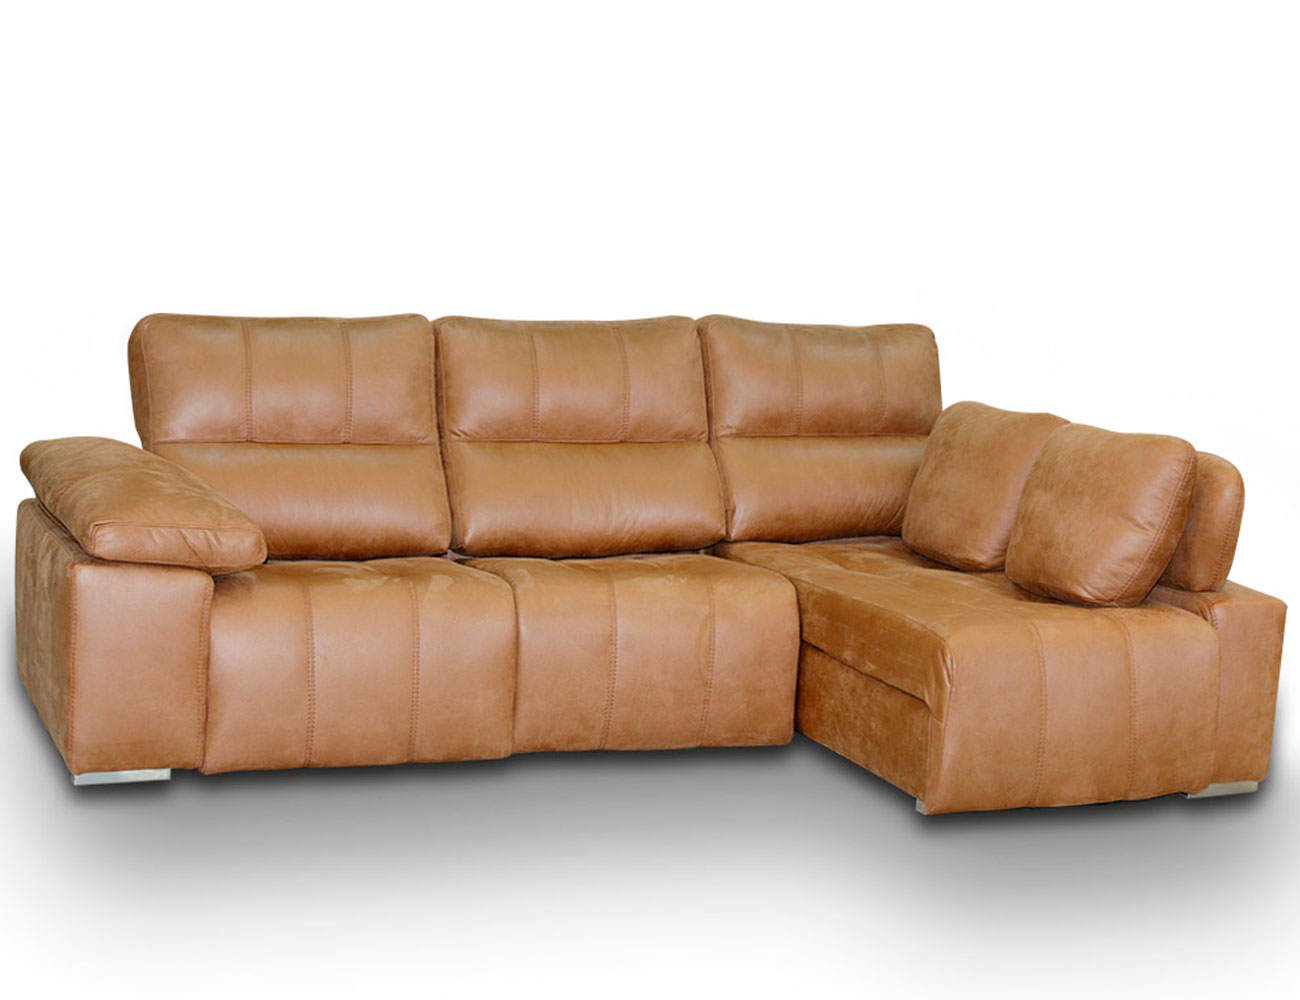 Sofa chaiselongue relax 2 motores anti manchas4